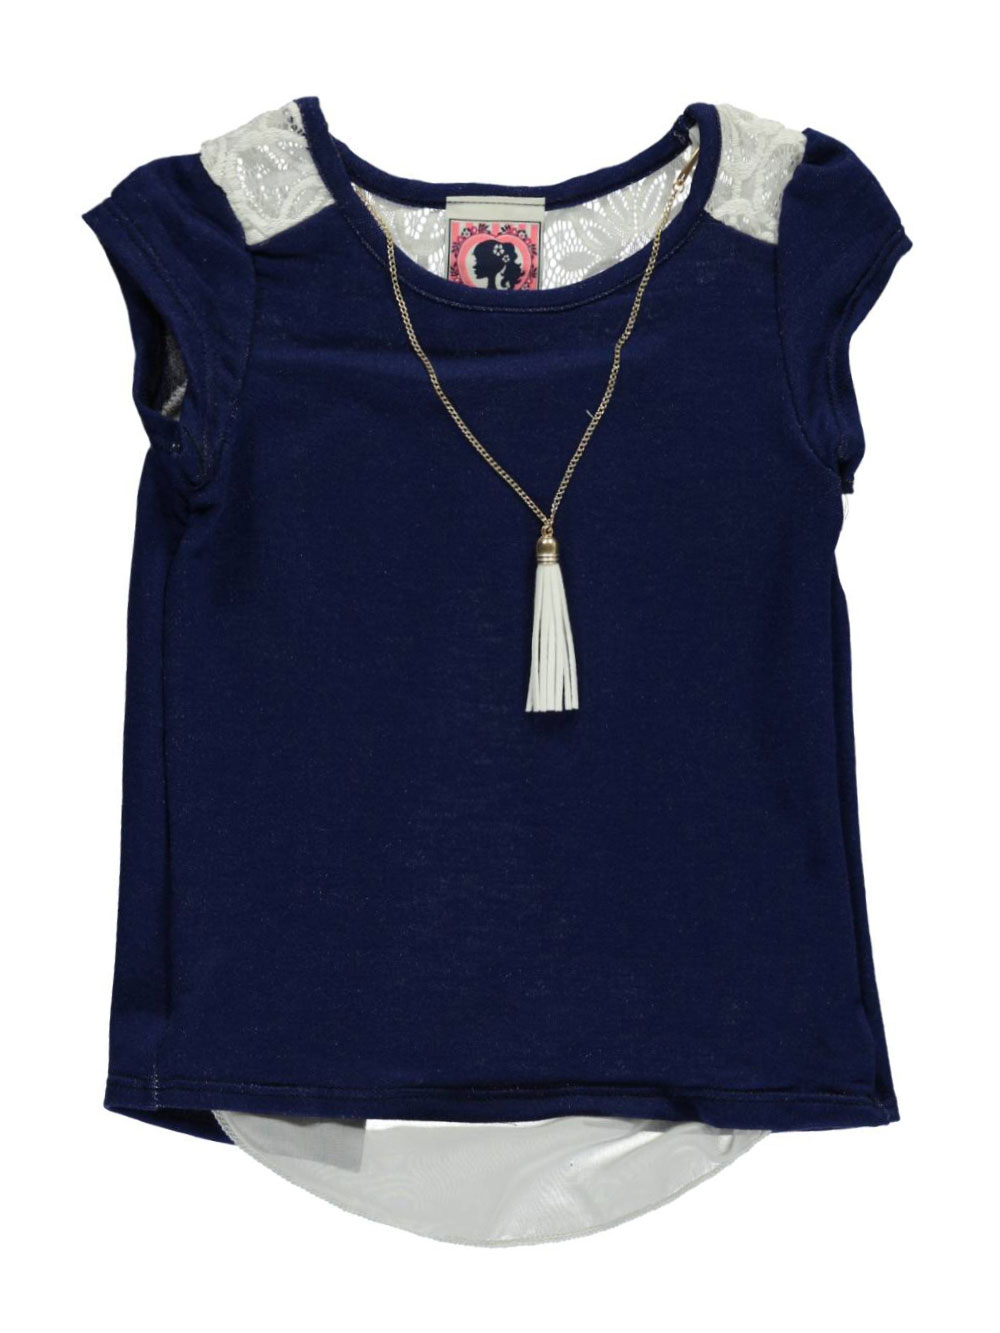 Image of Dream Girl Little Girls Lacy Chiffon Top with Necklace Sizes 4  6X